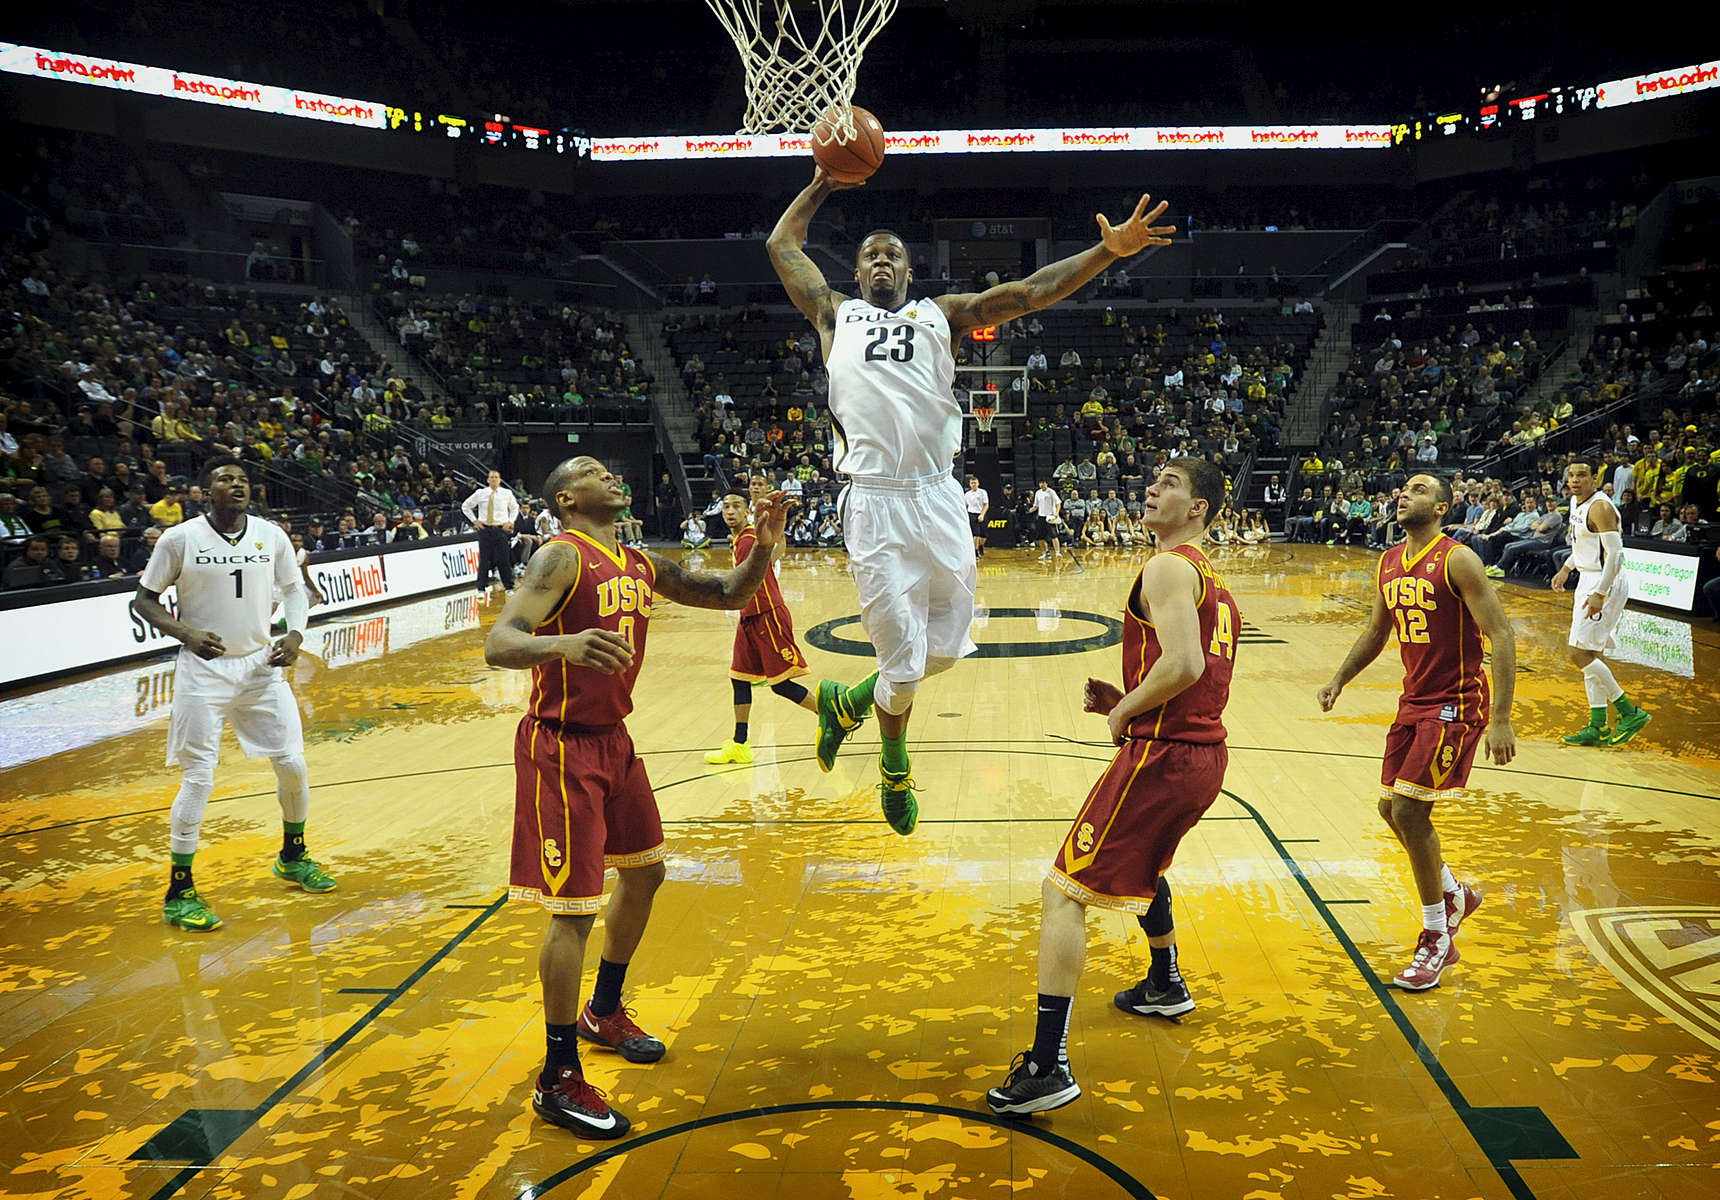 Oregon's Elgin Cook soars past USC defenders for a dunk  during the first half of the Pac-12 matchup at Matthew Knight Arena in Eugene on Thursday January 22, 2015. (Andy Nelson/The Register-Guard)